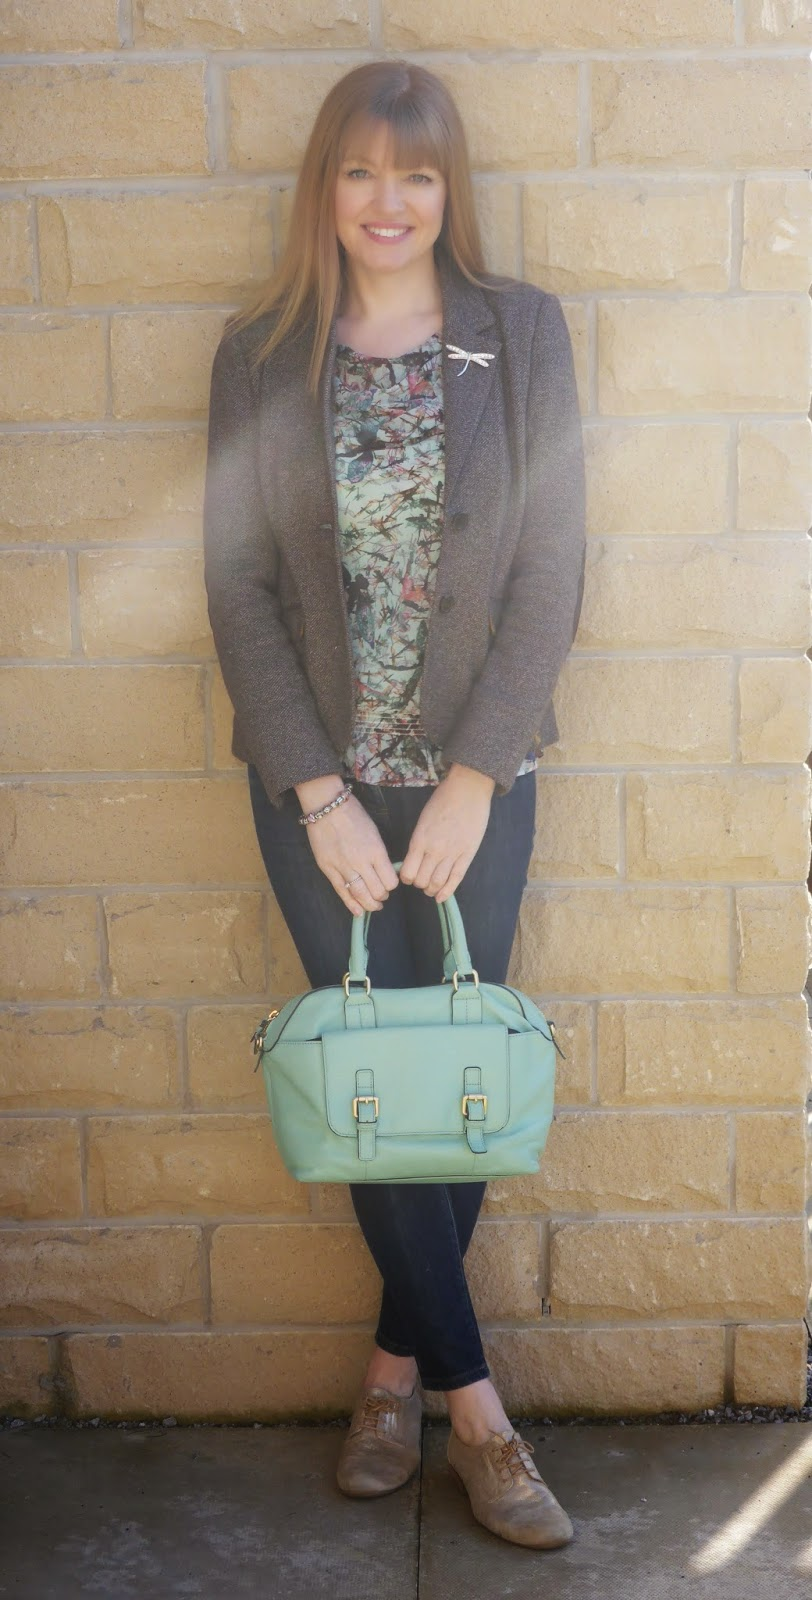 What Lizzy Loves, over 40 blogger, 40+ blogger. Jersey tweed jacket. Metallic brogues, dragonfly top, mint green bowling bag